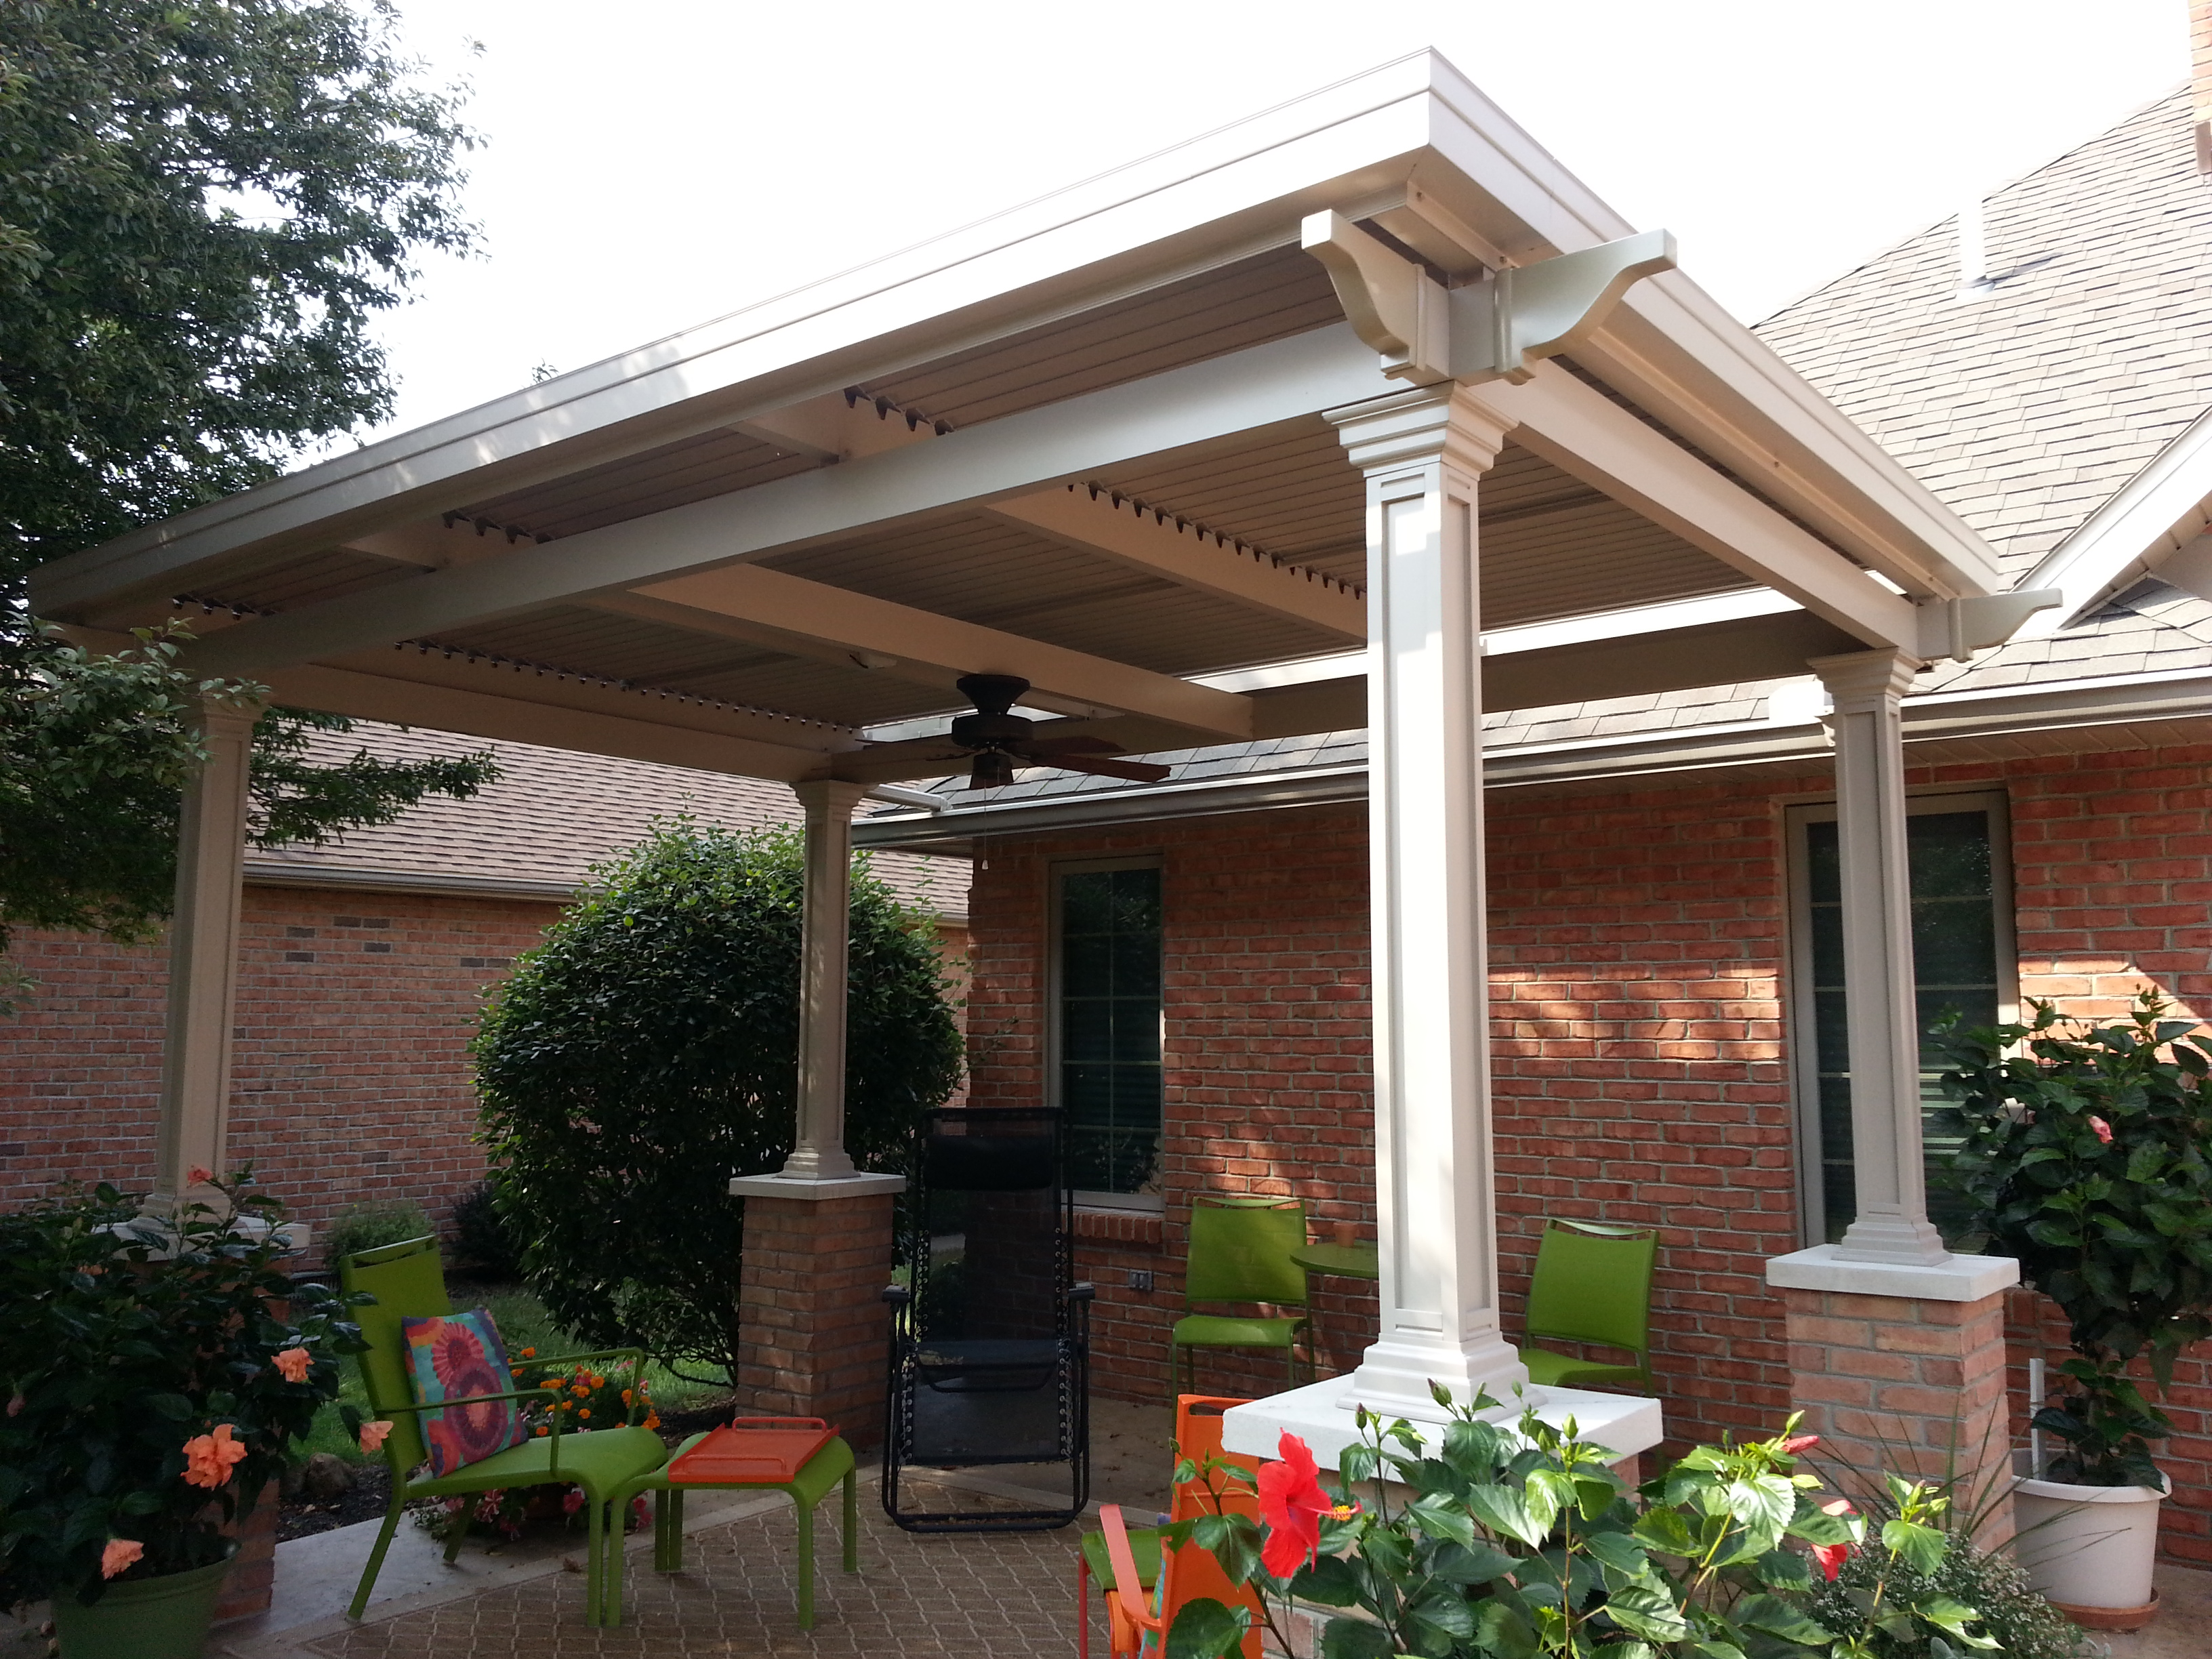 Add A Freestanding Louvered Patio Cover Over Your Deck Or